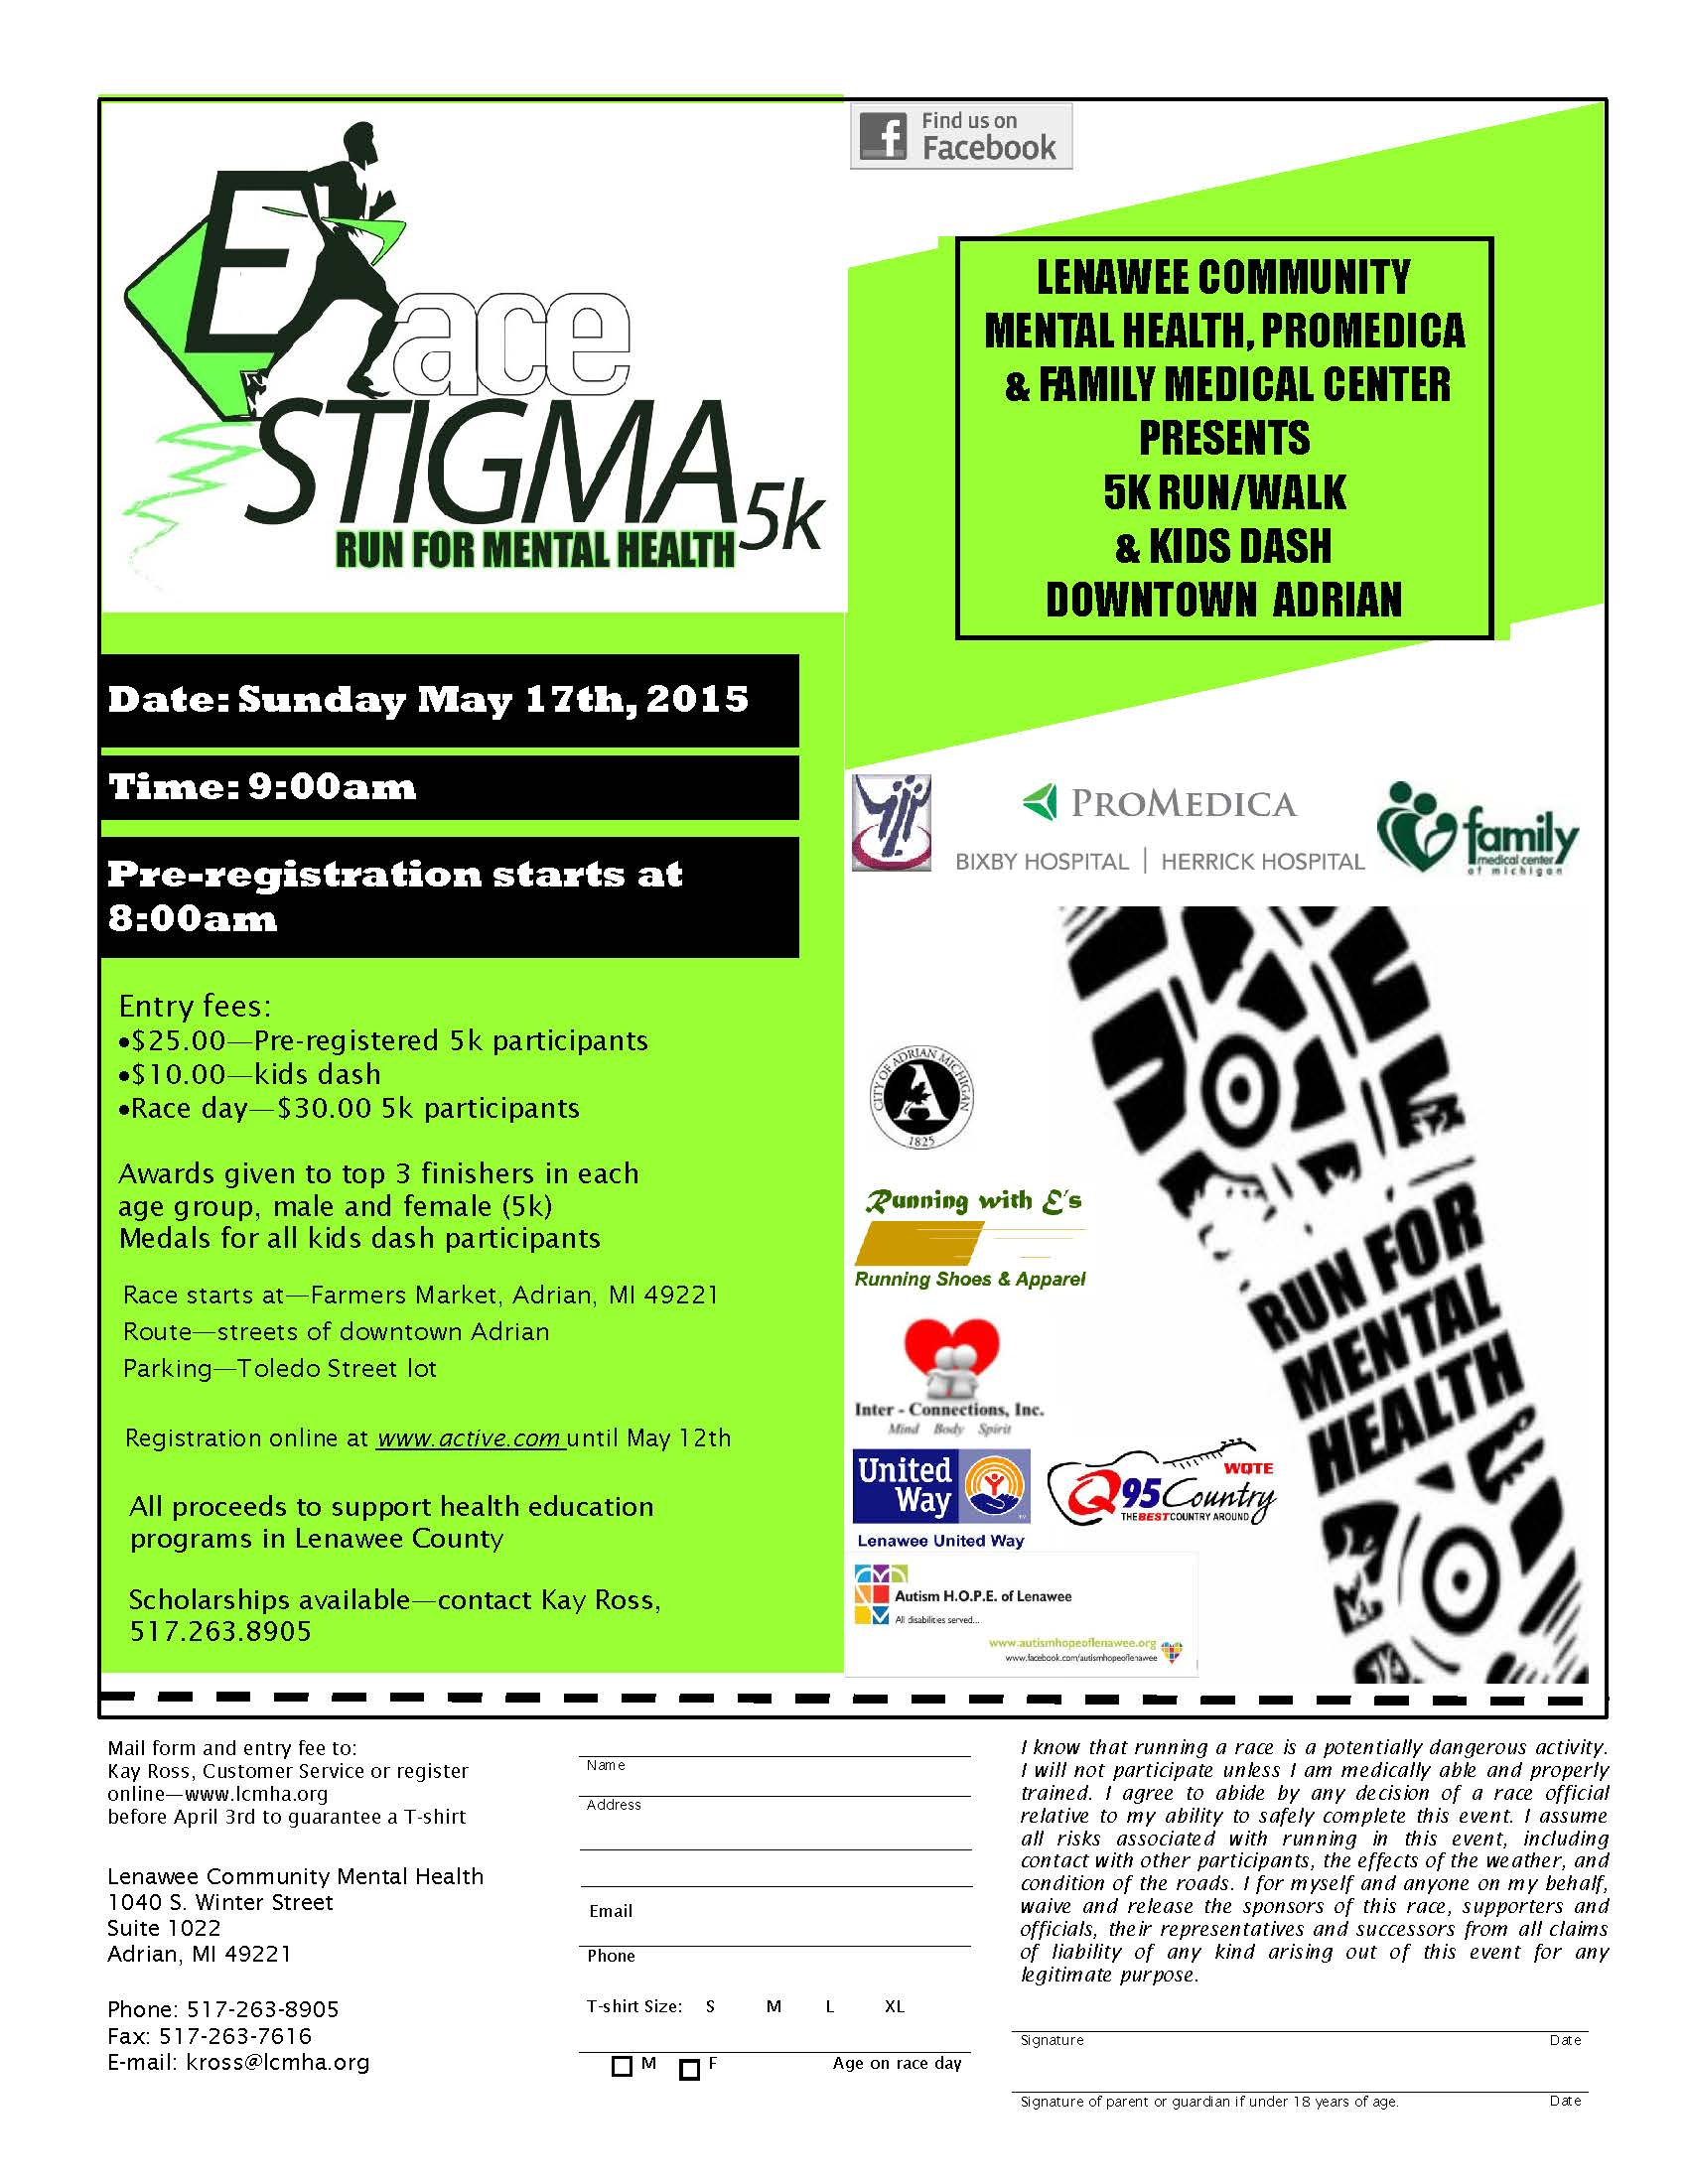 E Race Stigma 5k Run For Mental Health Adrian Mi 2015 Active